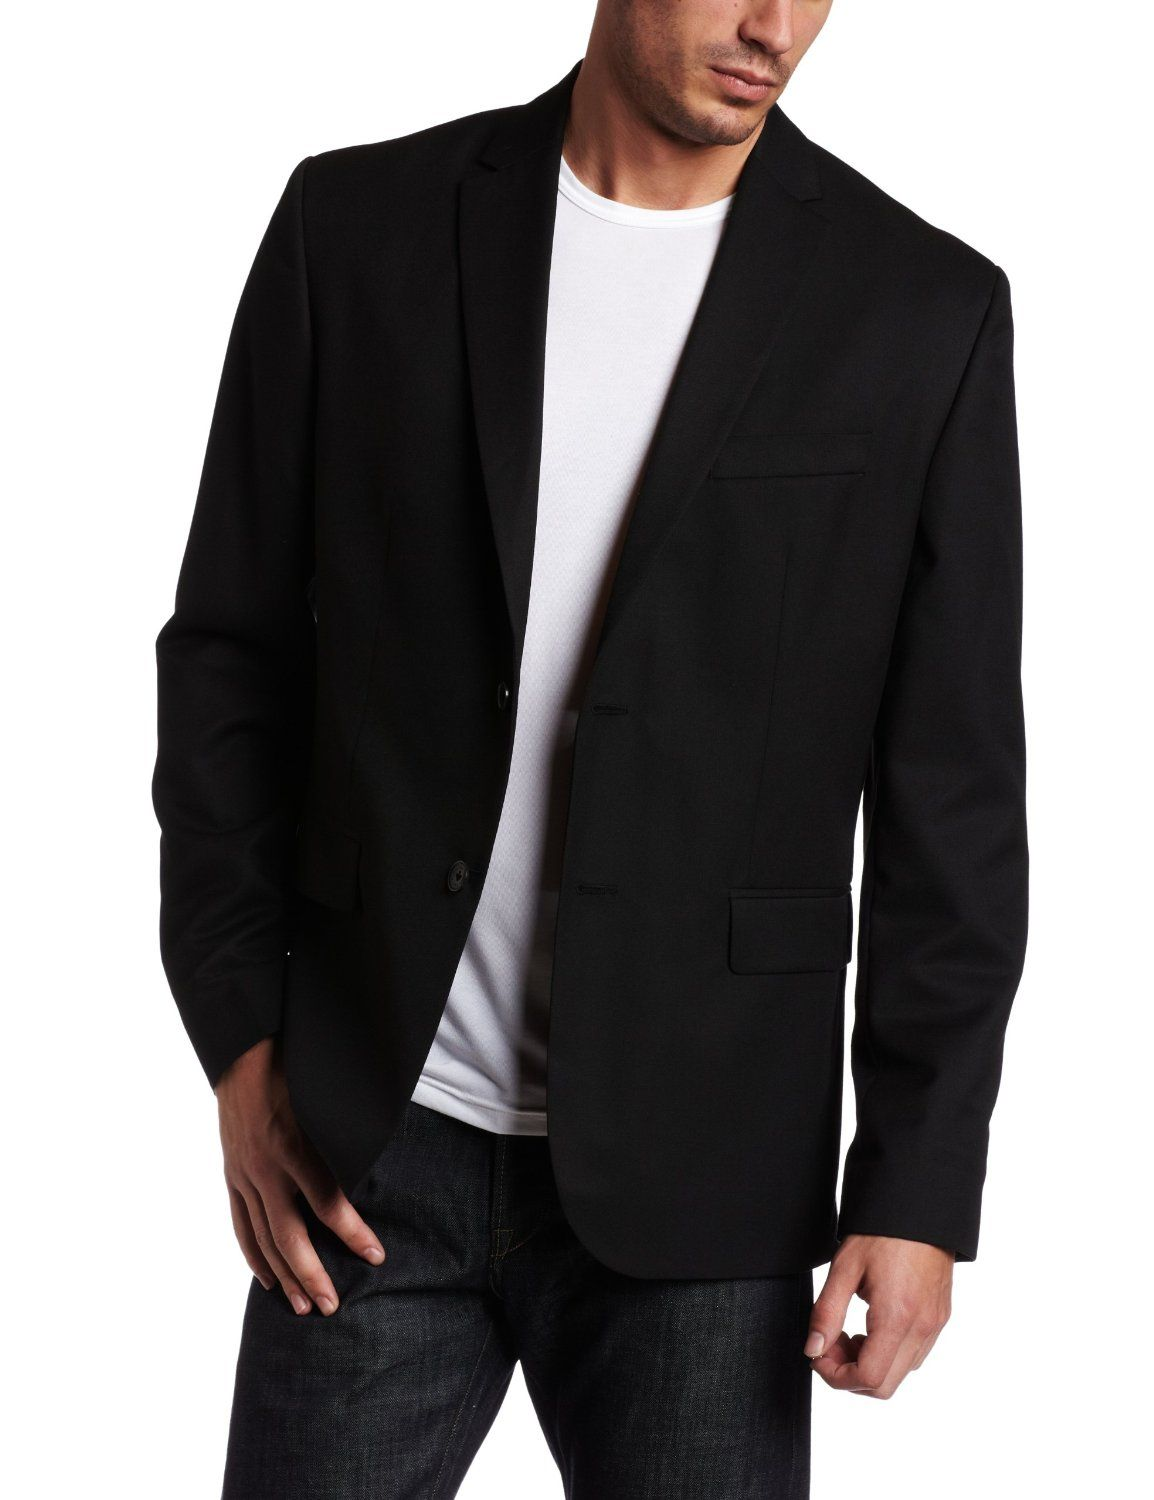 Mens Sports Blazers - Trendy Clothes